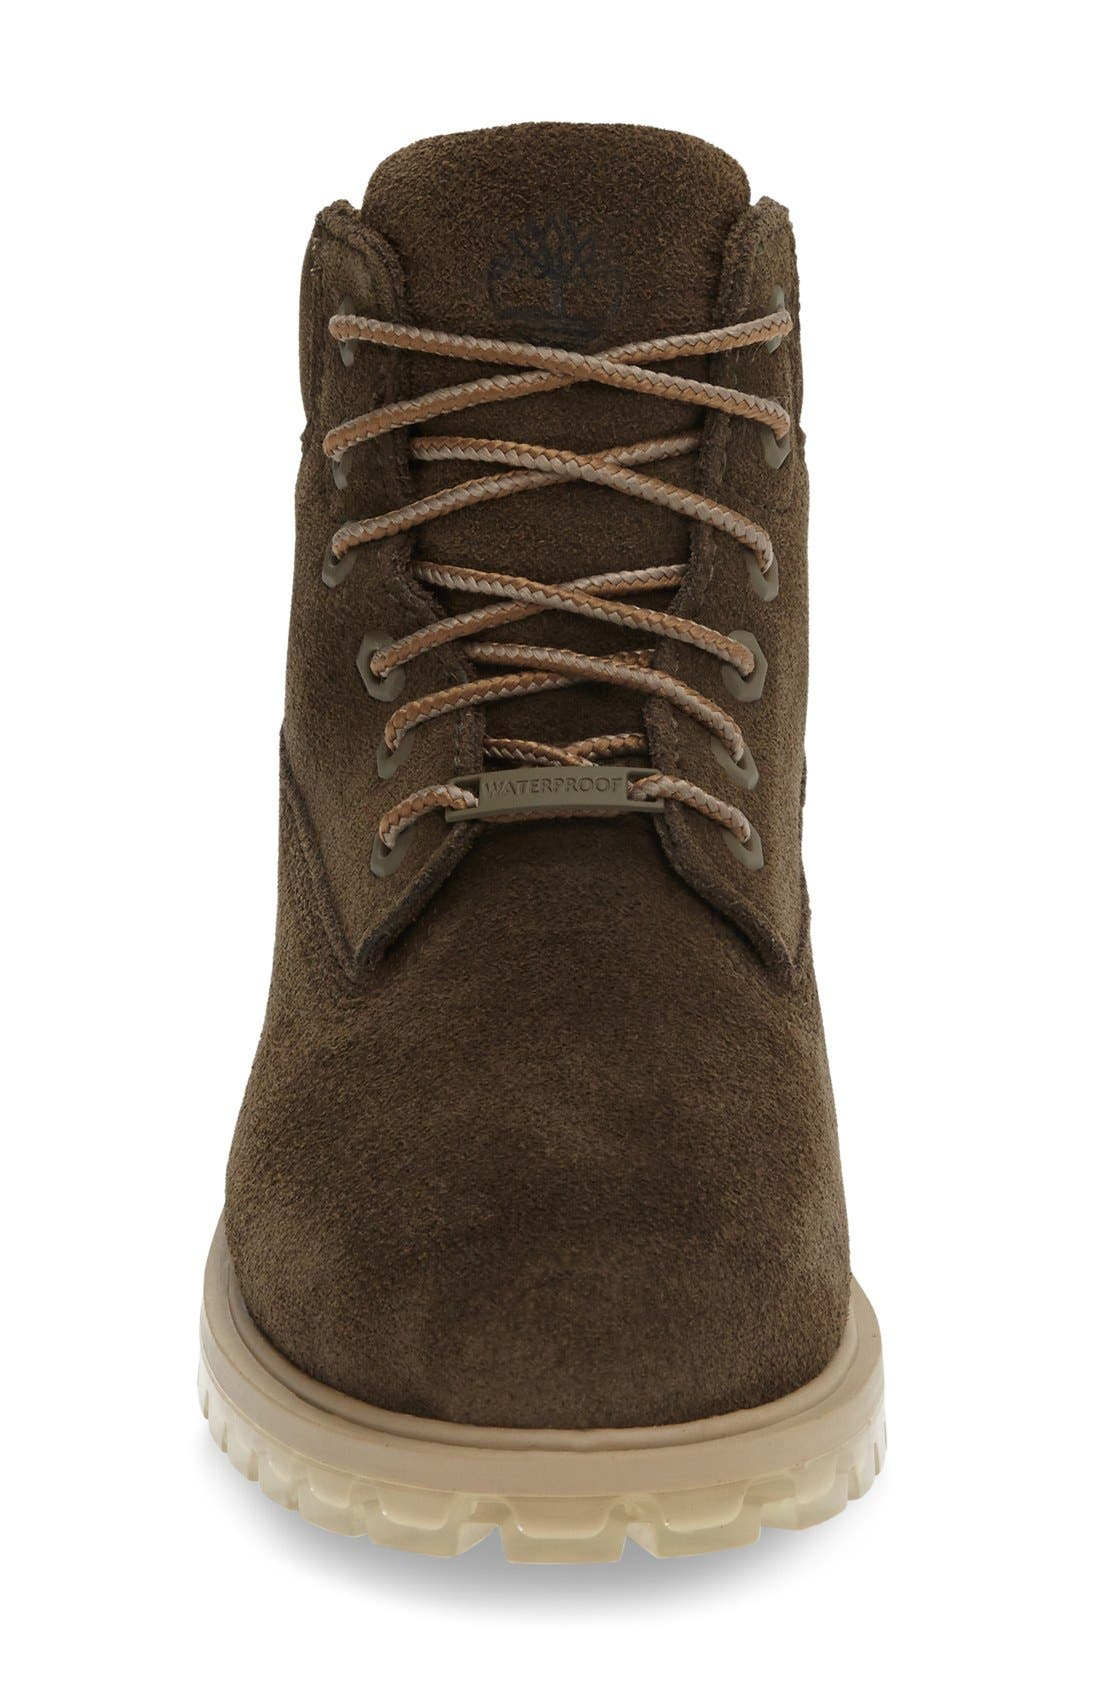 '6 Inch' Waterproof PrimaLoft<sup>®</sup> ECO Insulated Winter Boot,                             Alternate thumbnail 3, color,                             Dark Olive Suede